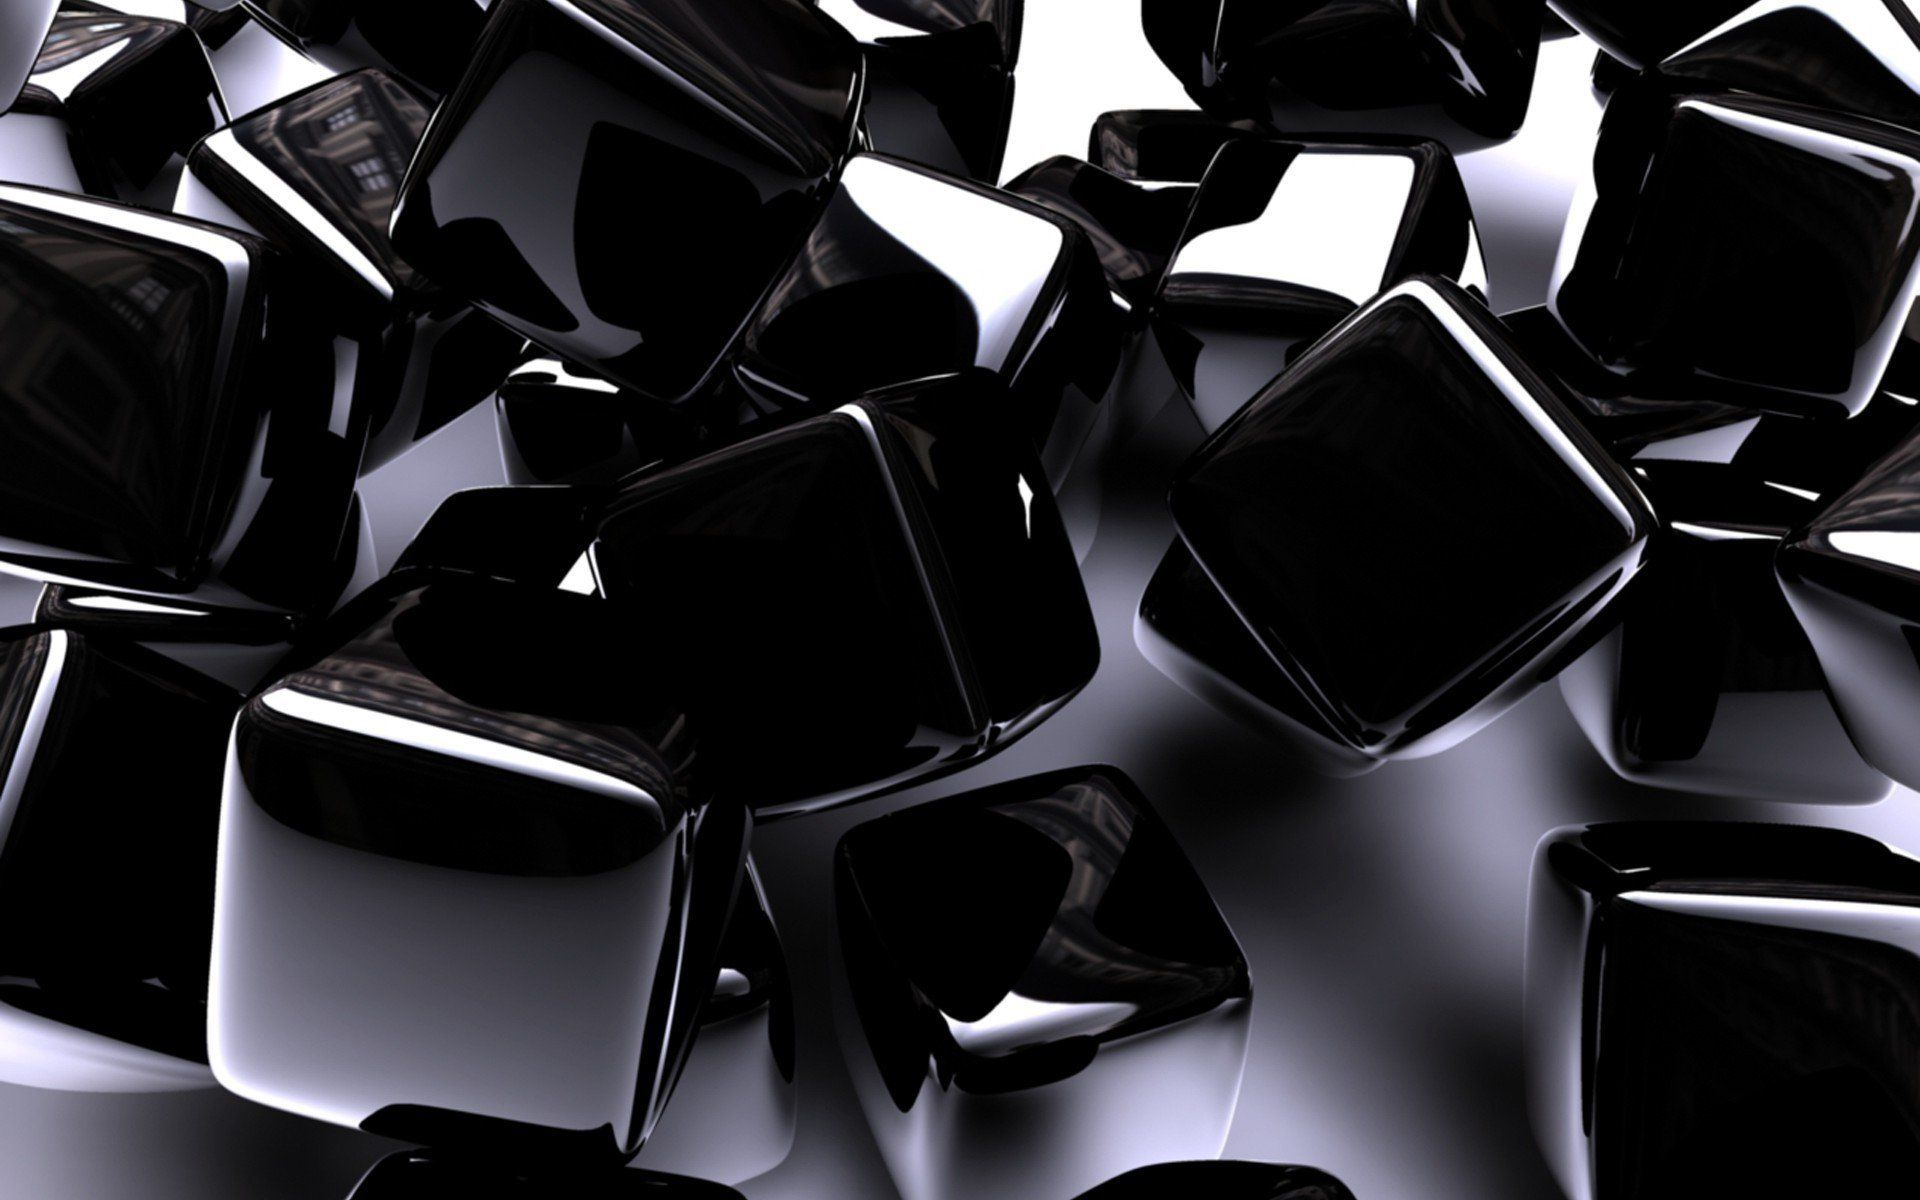 Shiny black cubes widescreen desktop mobile iphone android